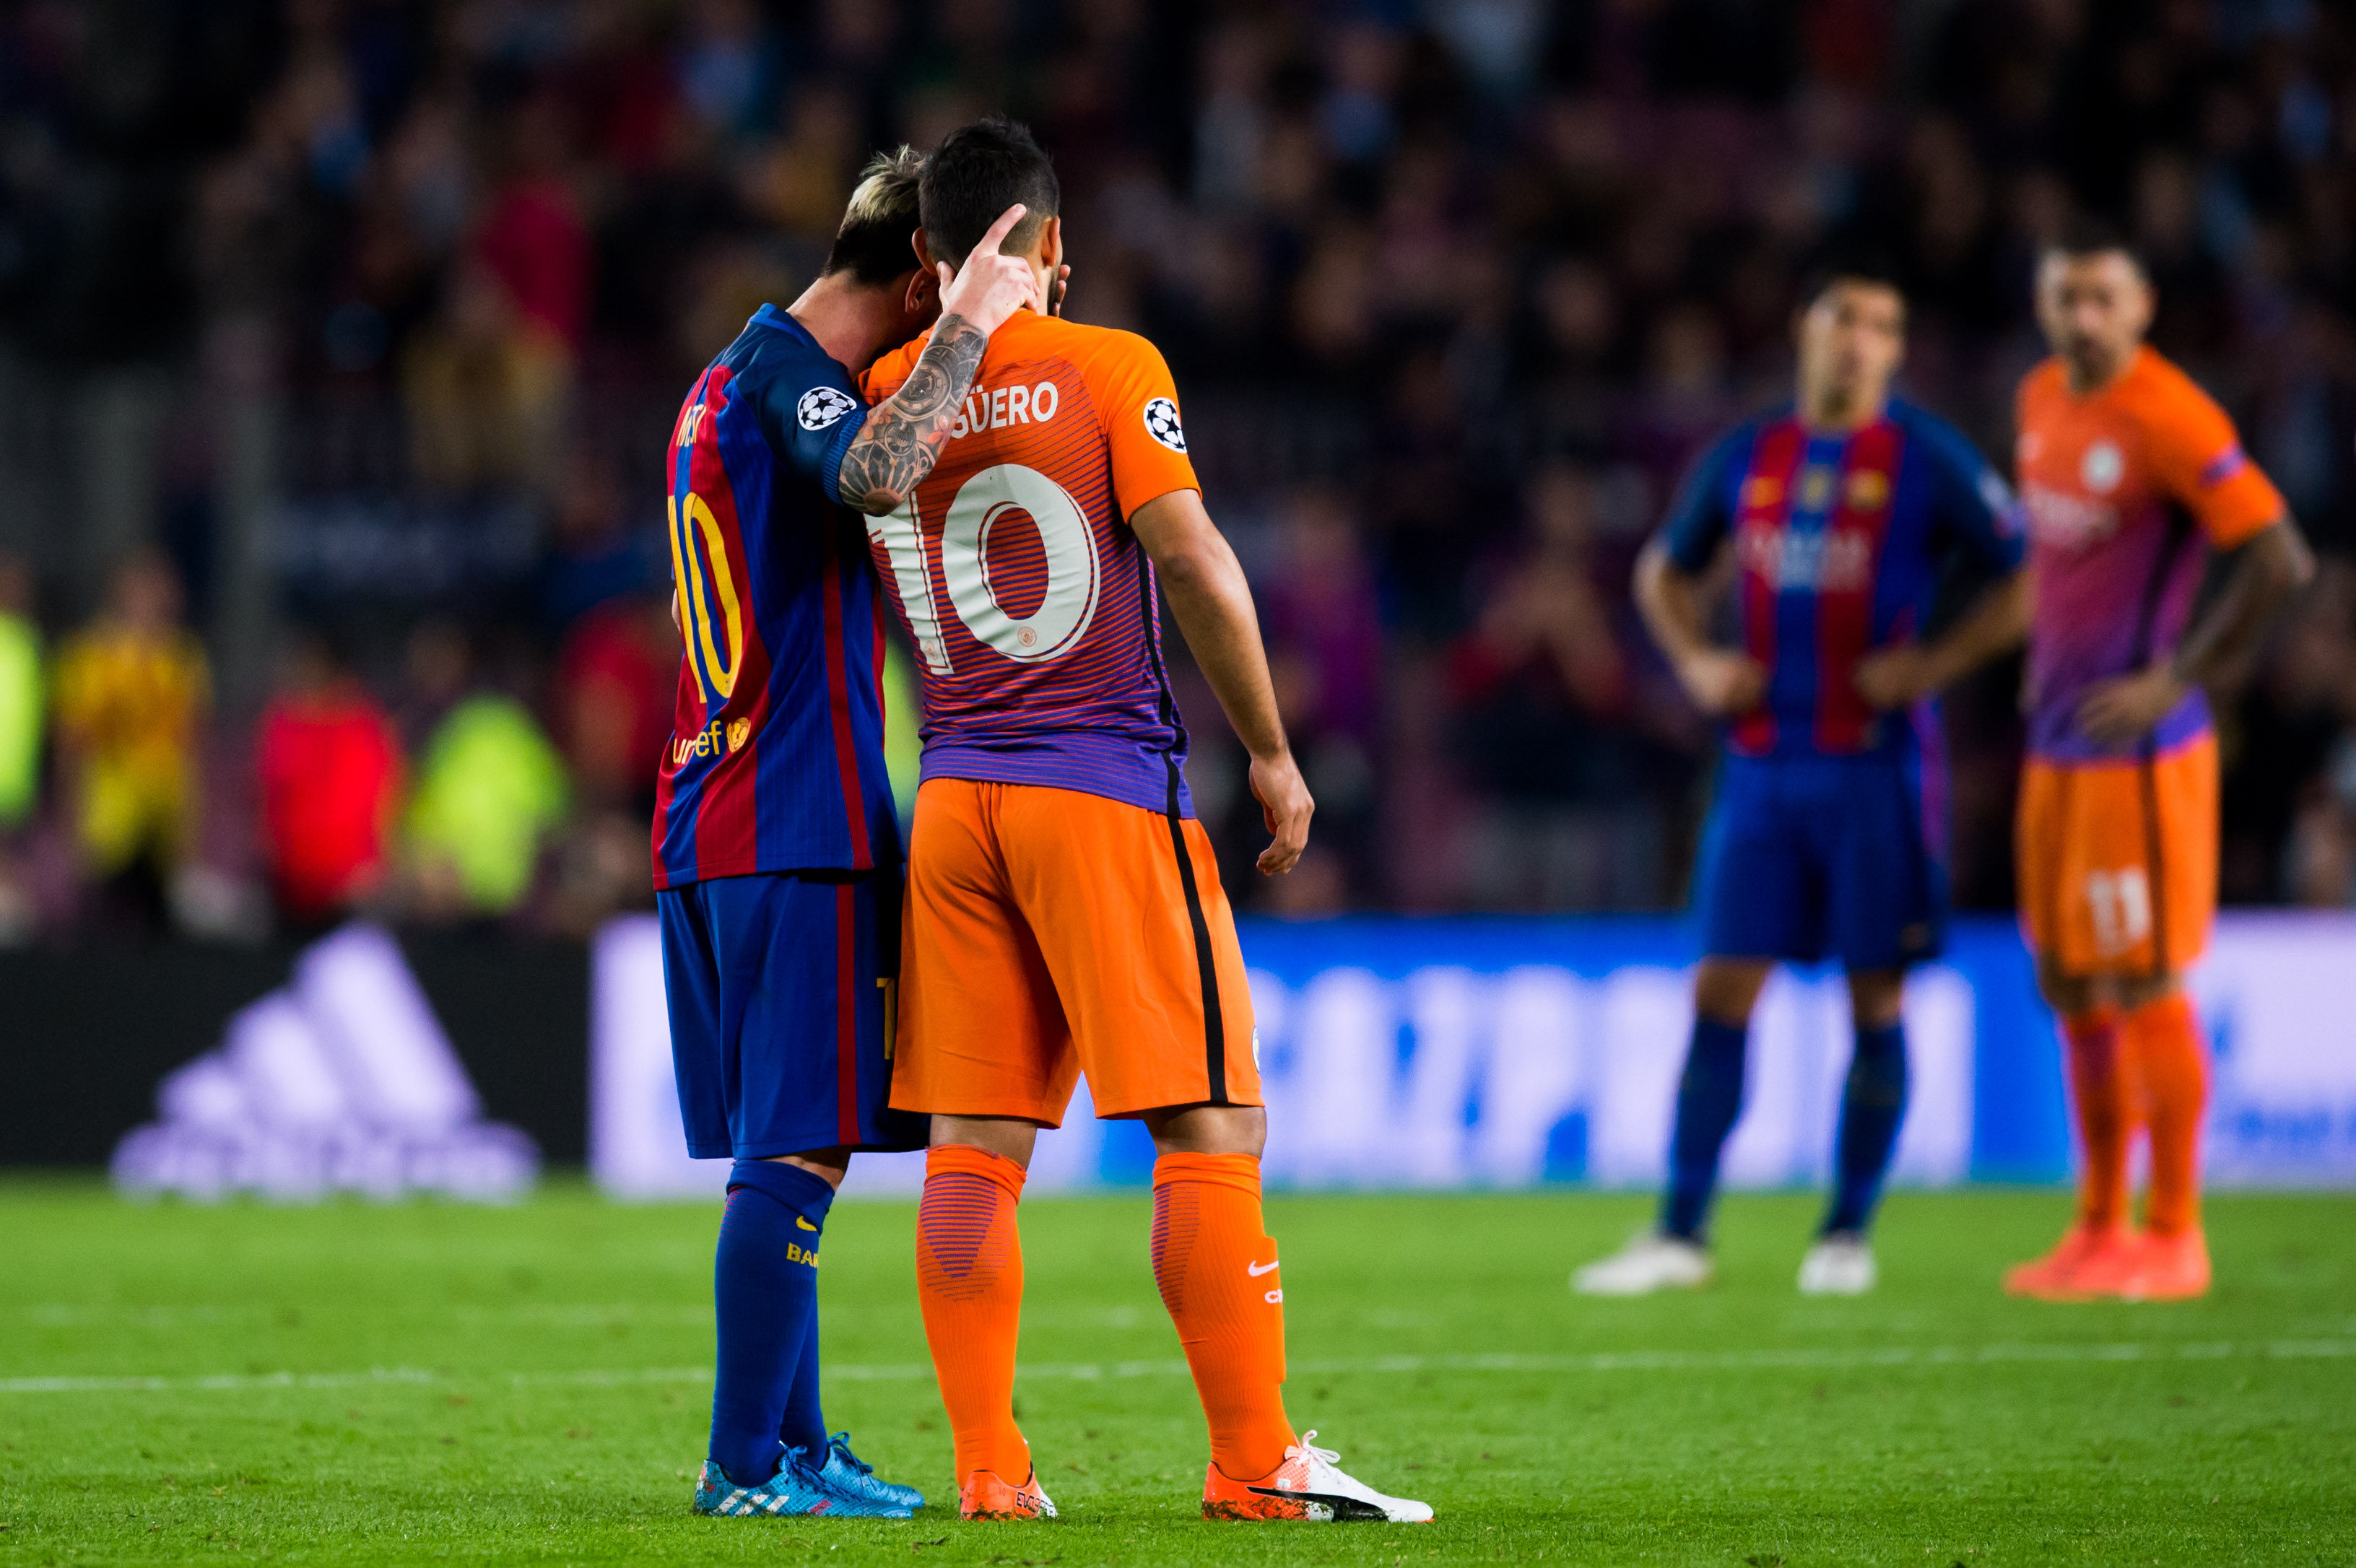 READ: Barcelona TOP news this morning